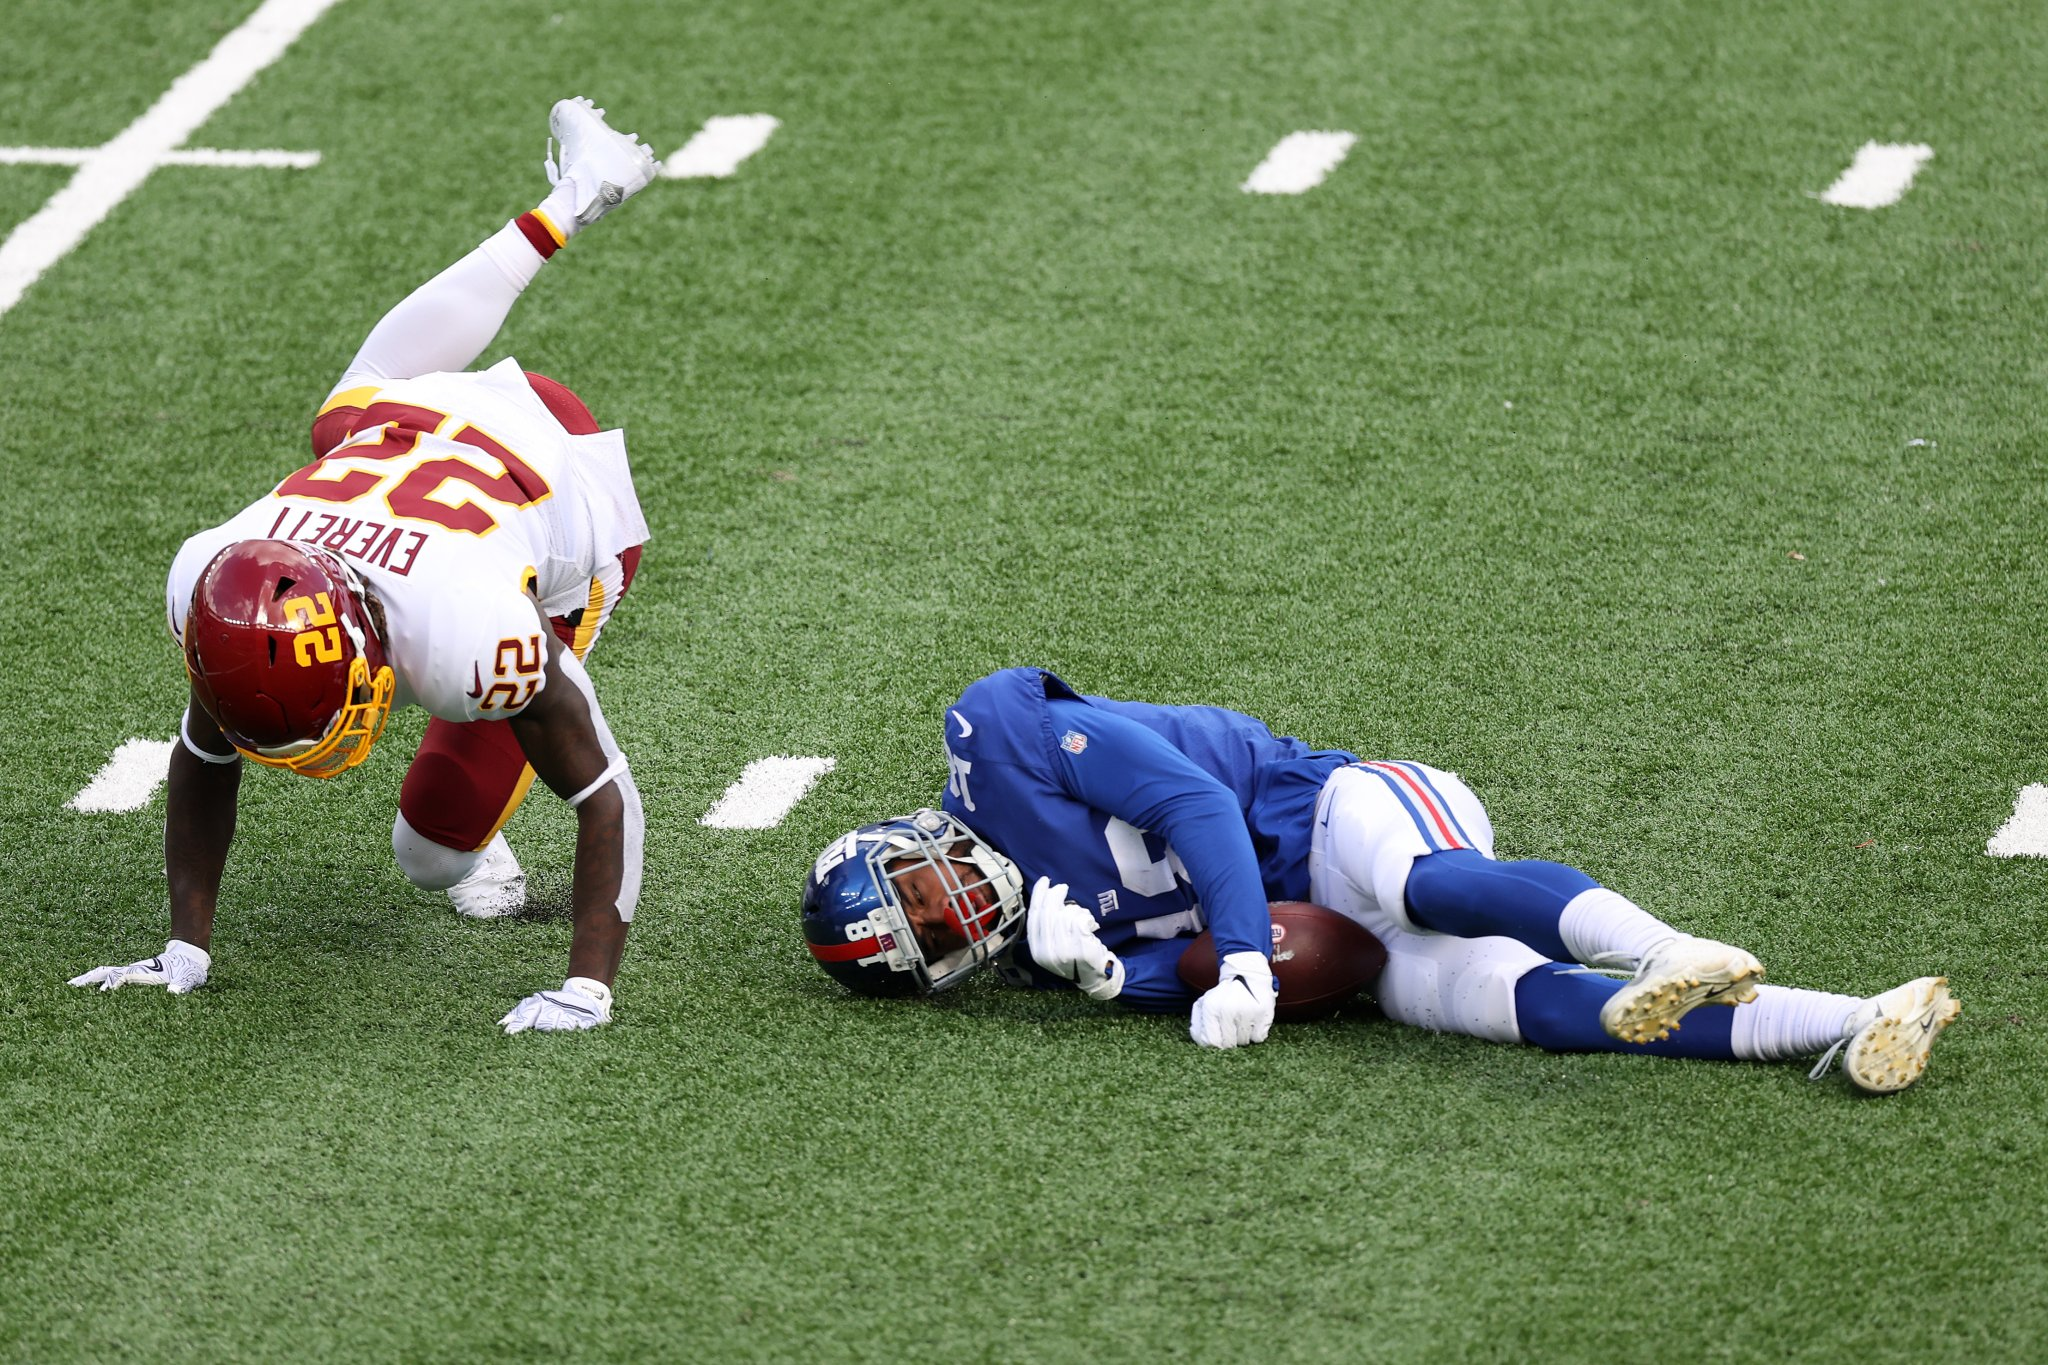 Giants WR C.J. Board Carted Off The Field After Appearing To Get Knocked Out Cold Following Scary Hit - BroBible